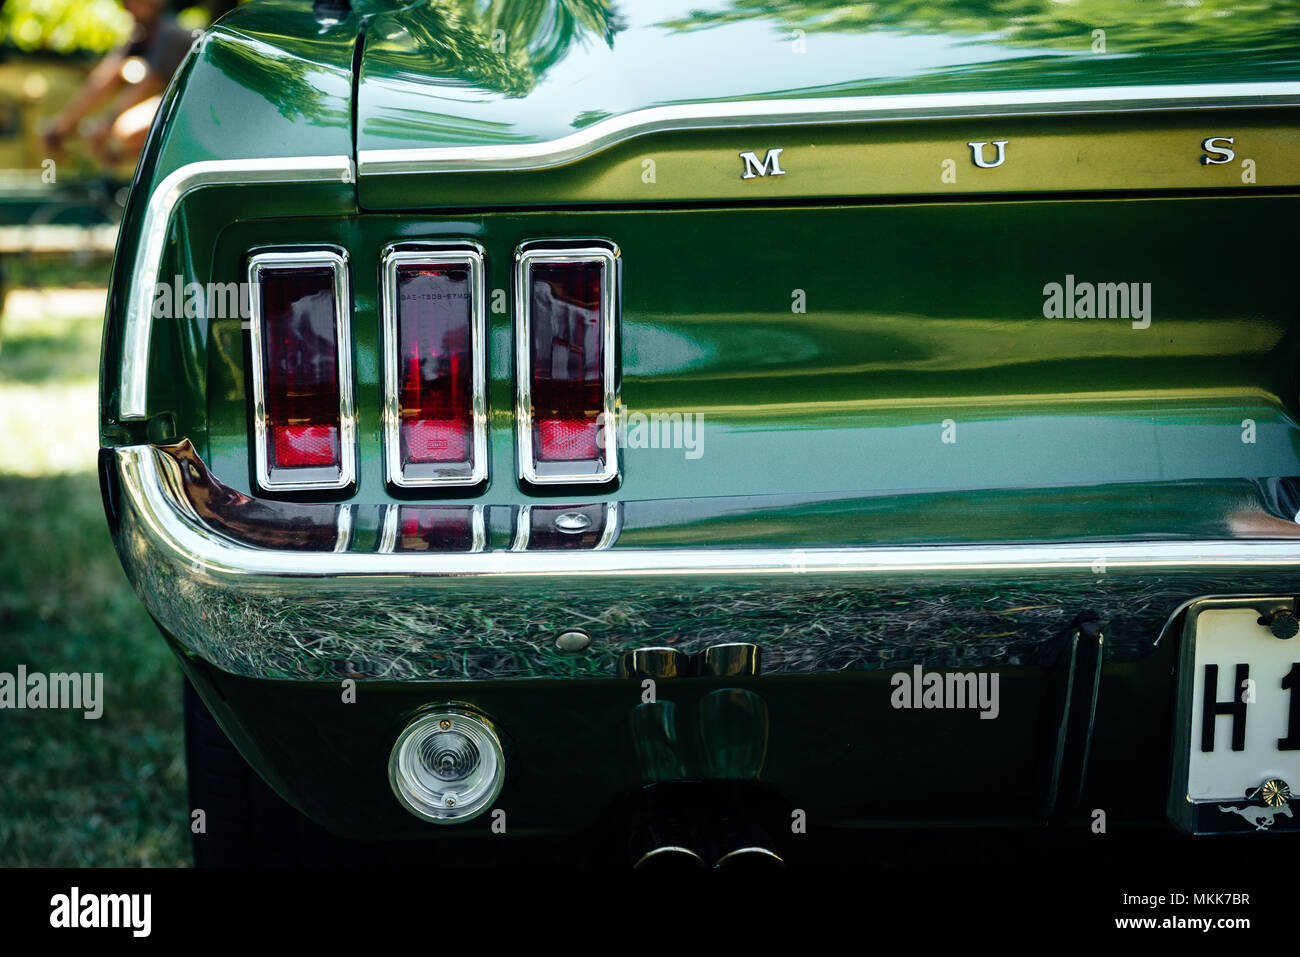 Back of a Ford Mustang - Stock Image